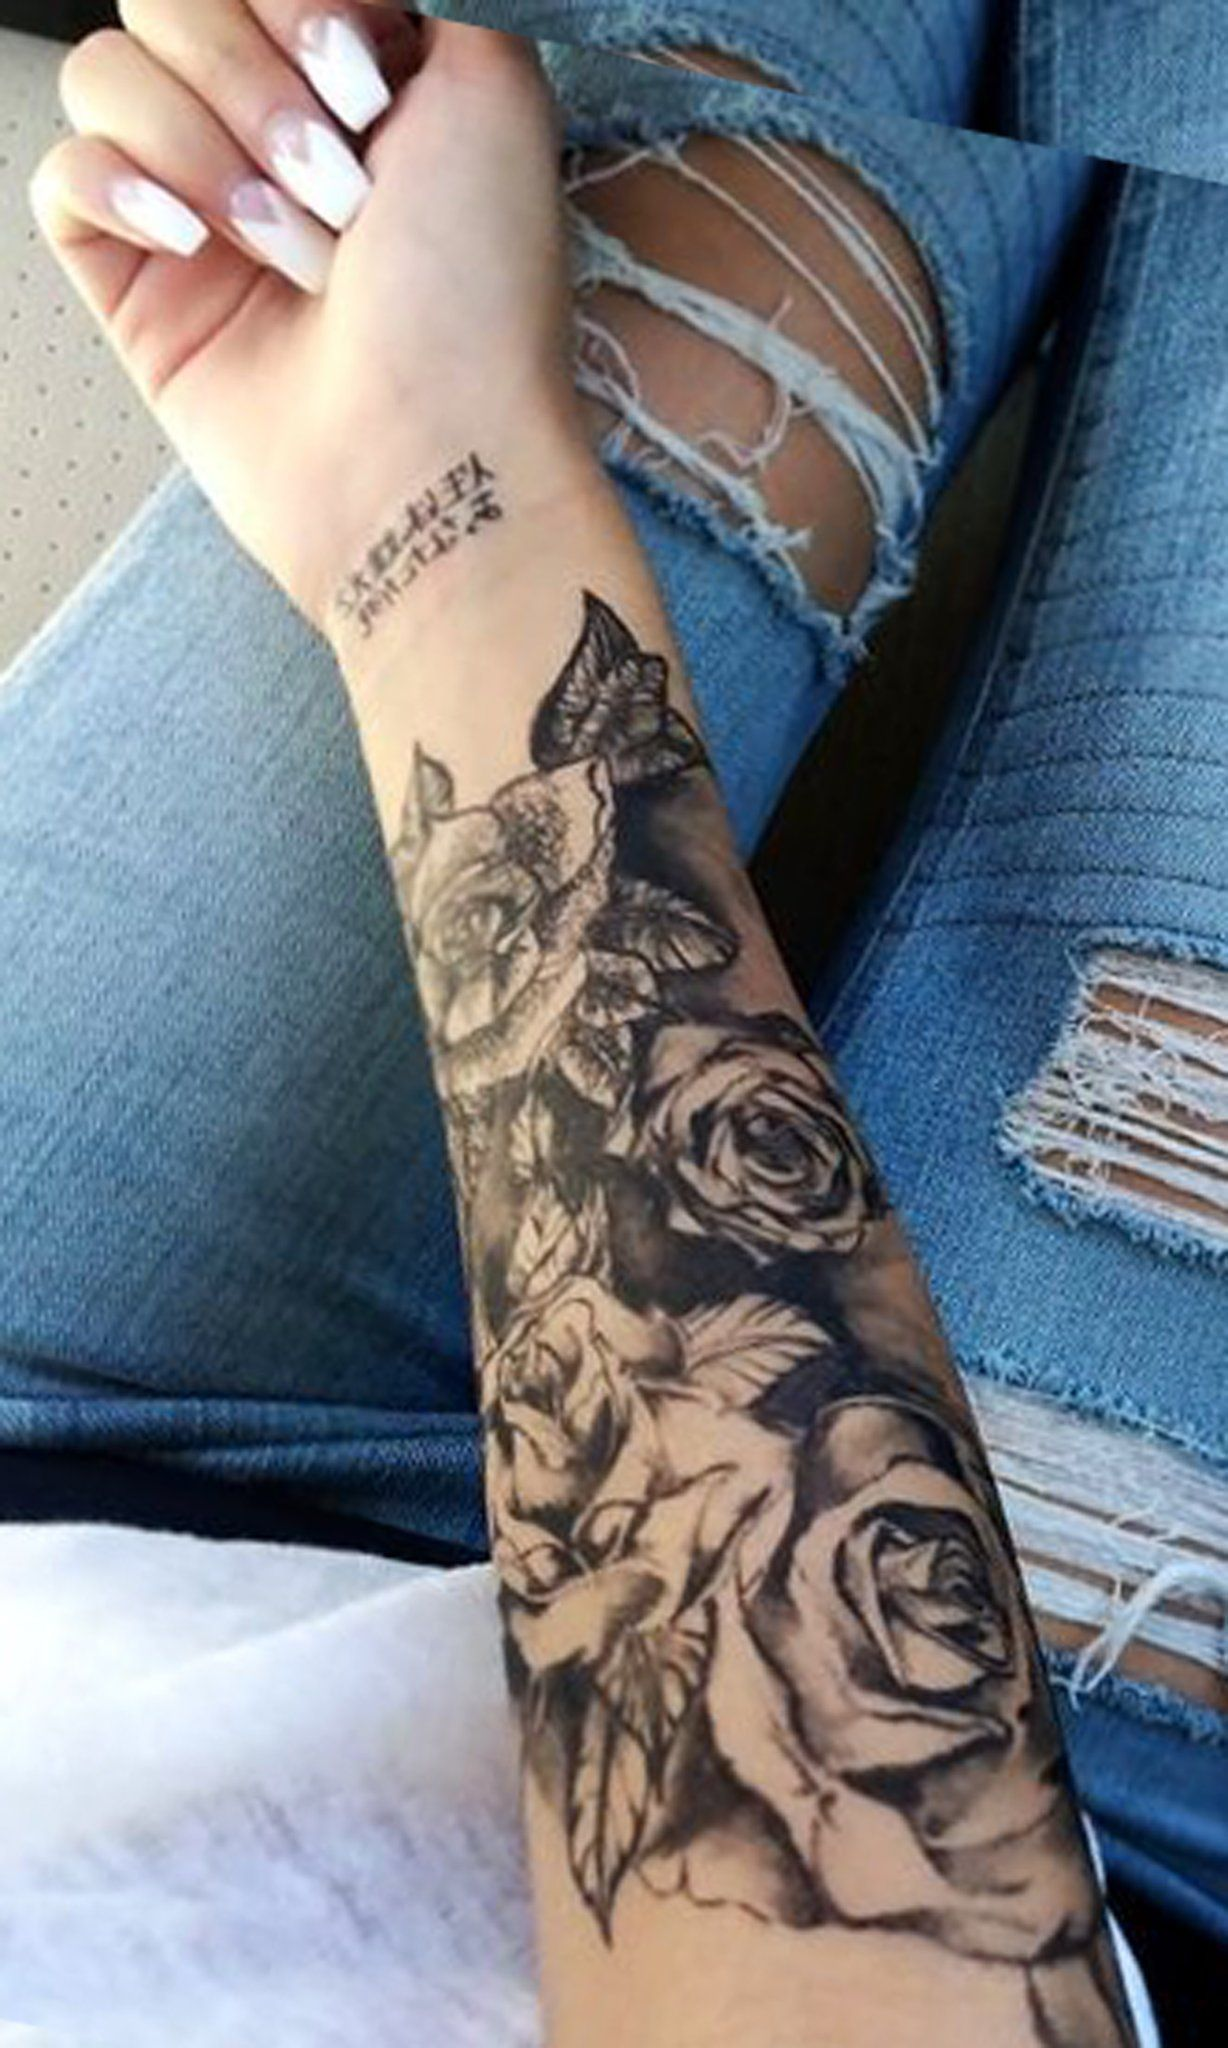 Black Rose Forearm Tattoo Ideas For Women Realistic Ideas And Designs